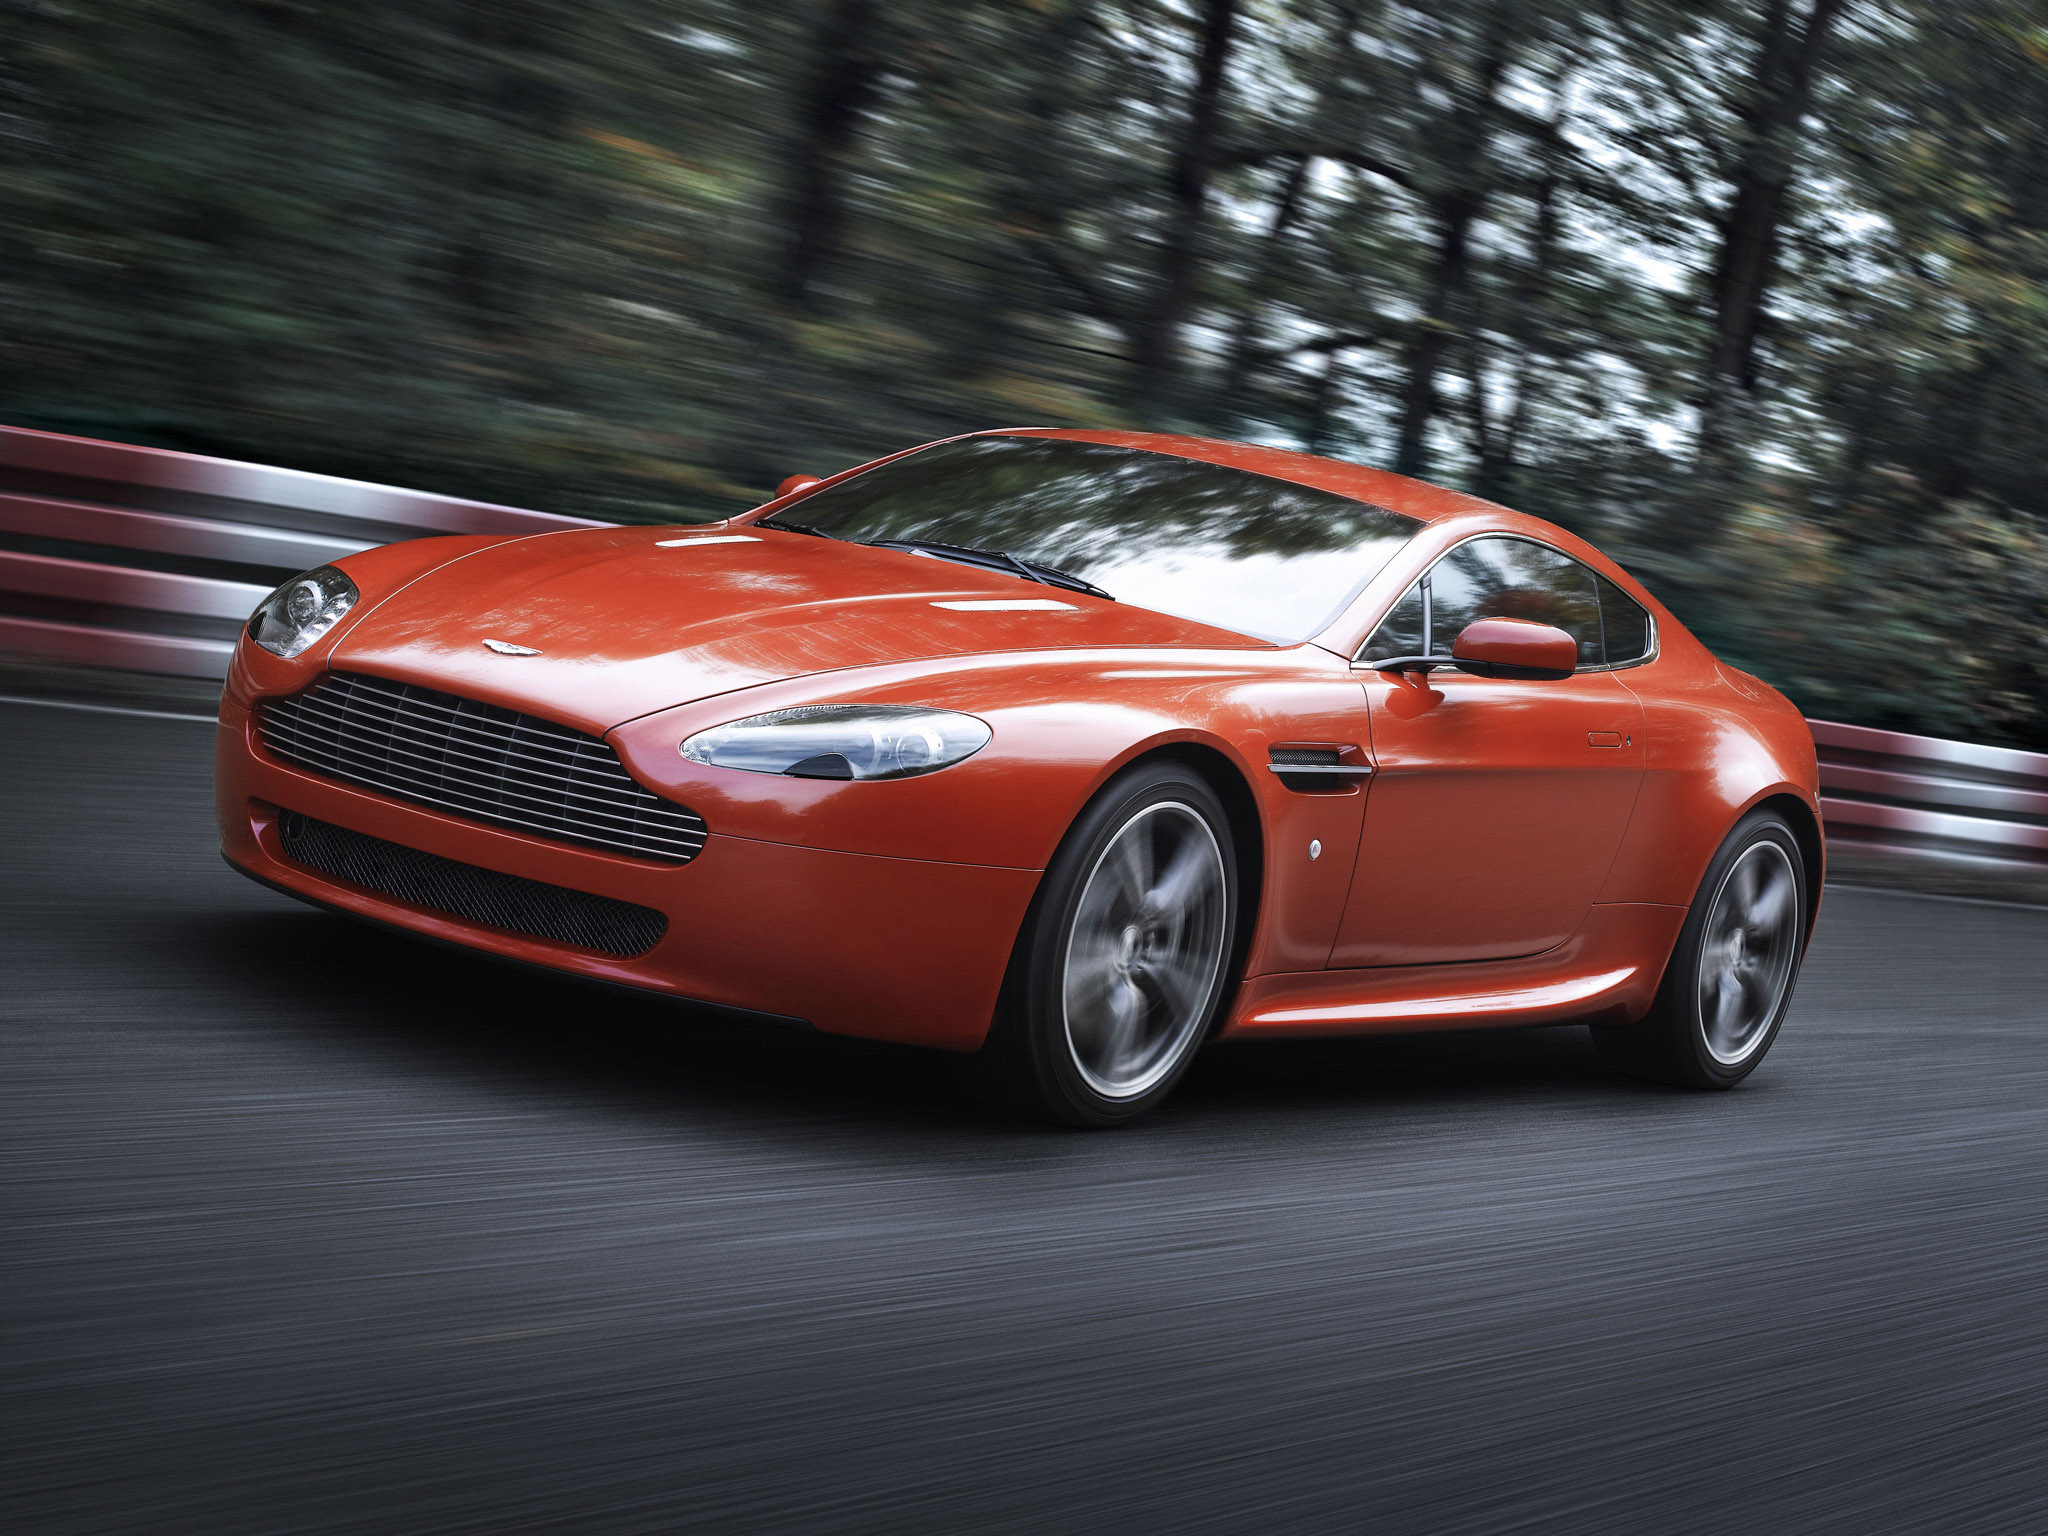 Aston Martin V8 Vantage N400 2008 Aston Martin V8 Vantage HD Wallpapers Download free images and photos [musssic.tk]